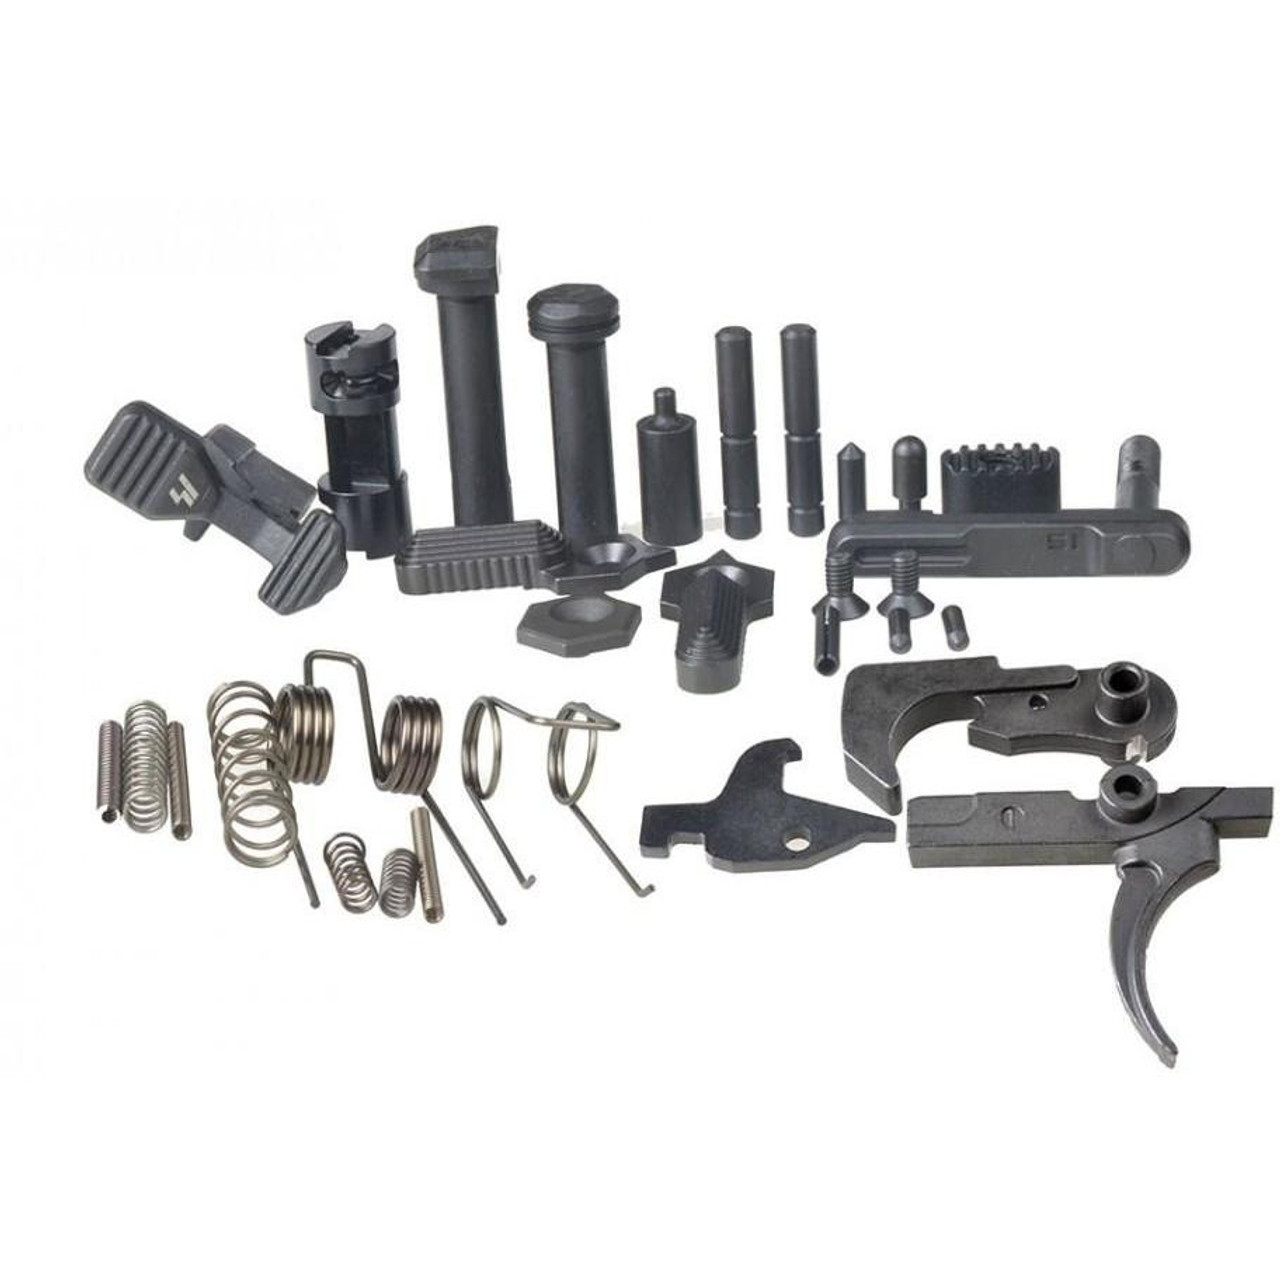 Strike Industries AR Enhanced Lower Receiver Parts with Trigger, Hammer and Disconnector